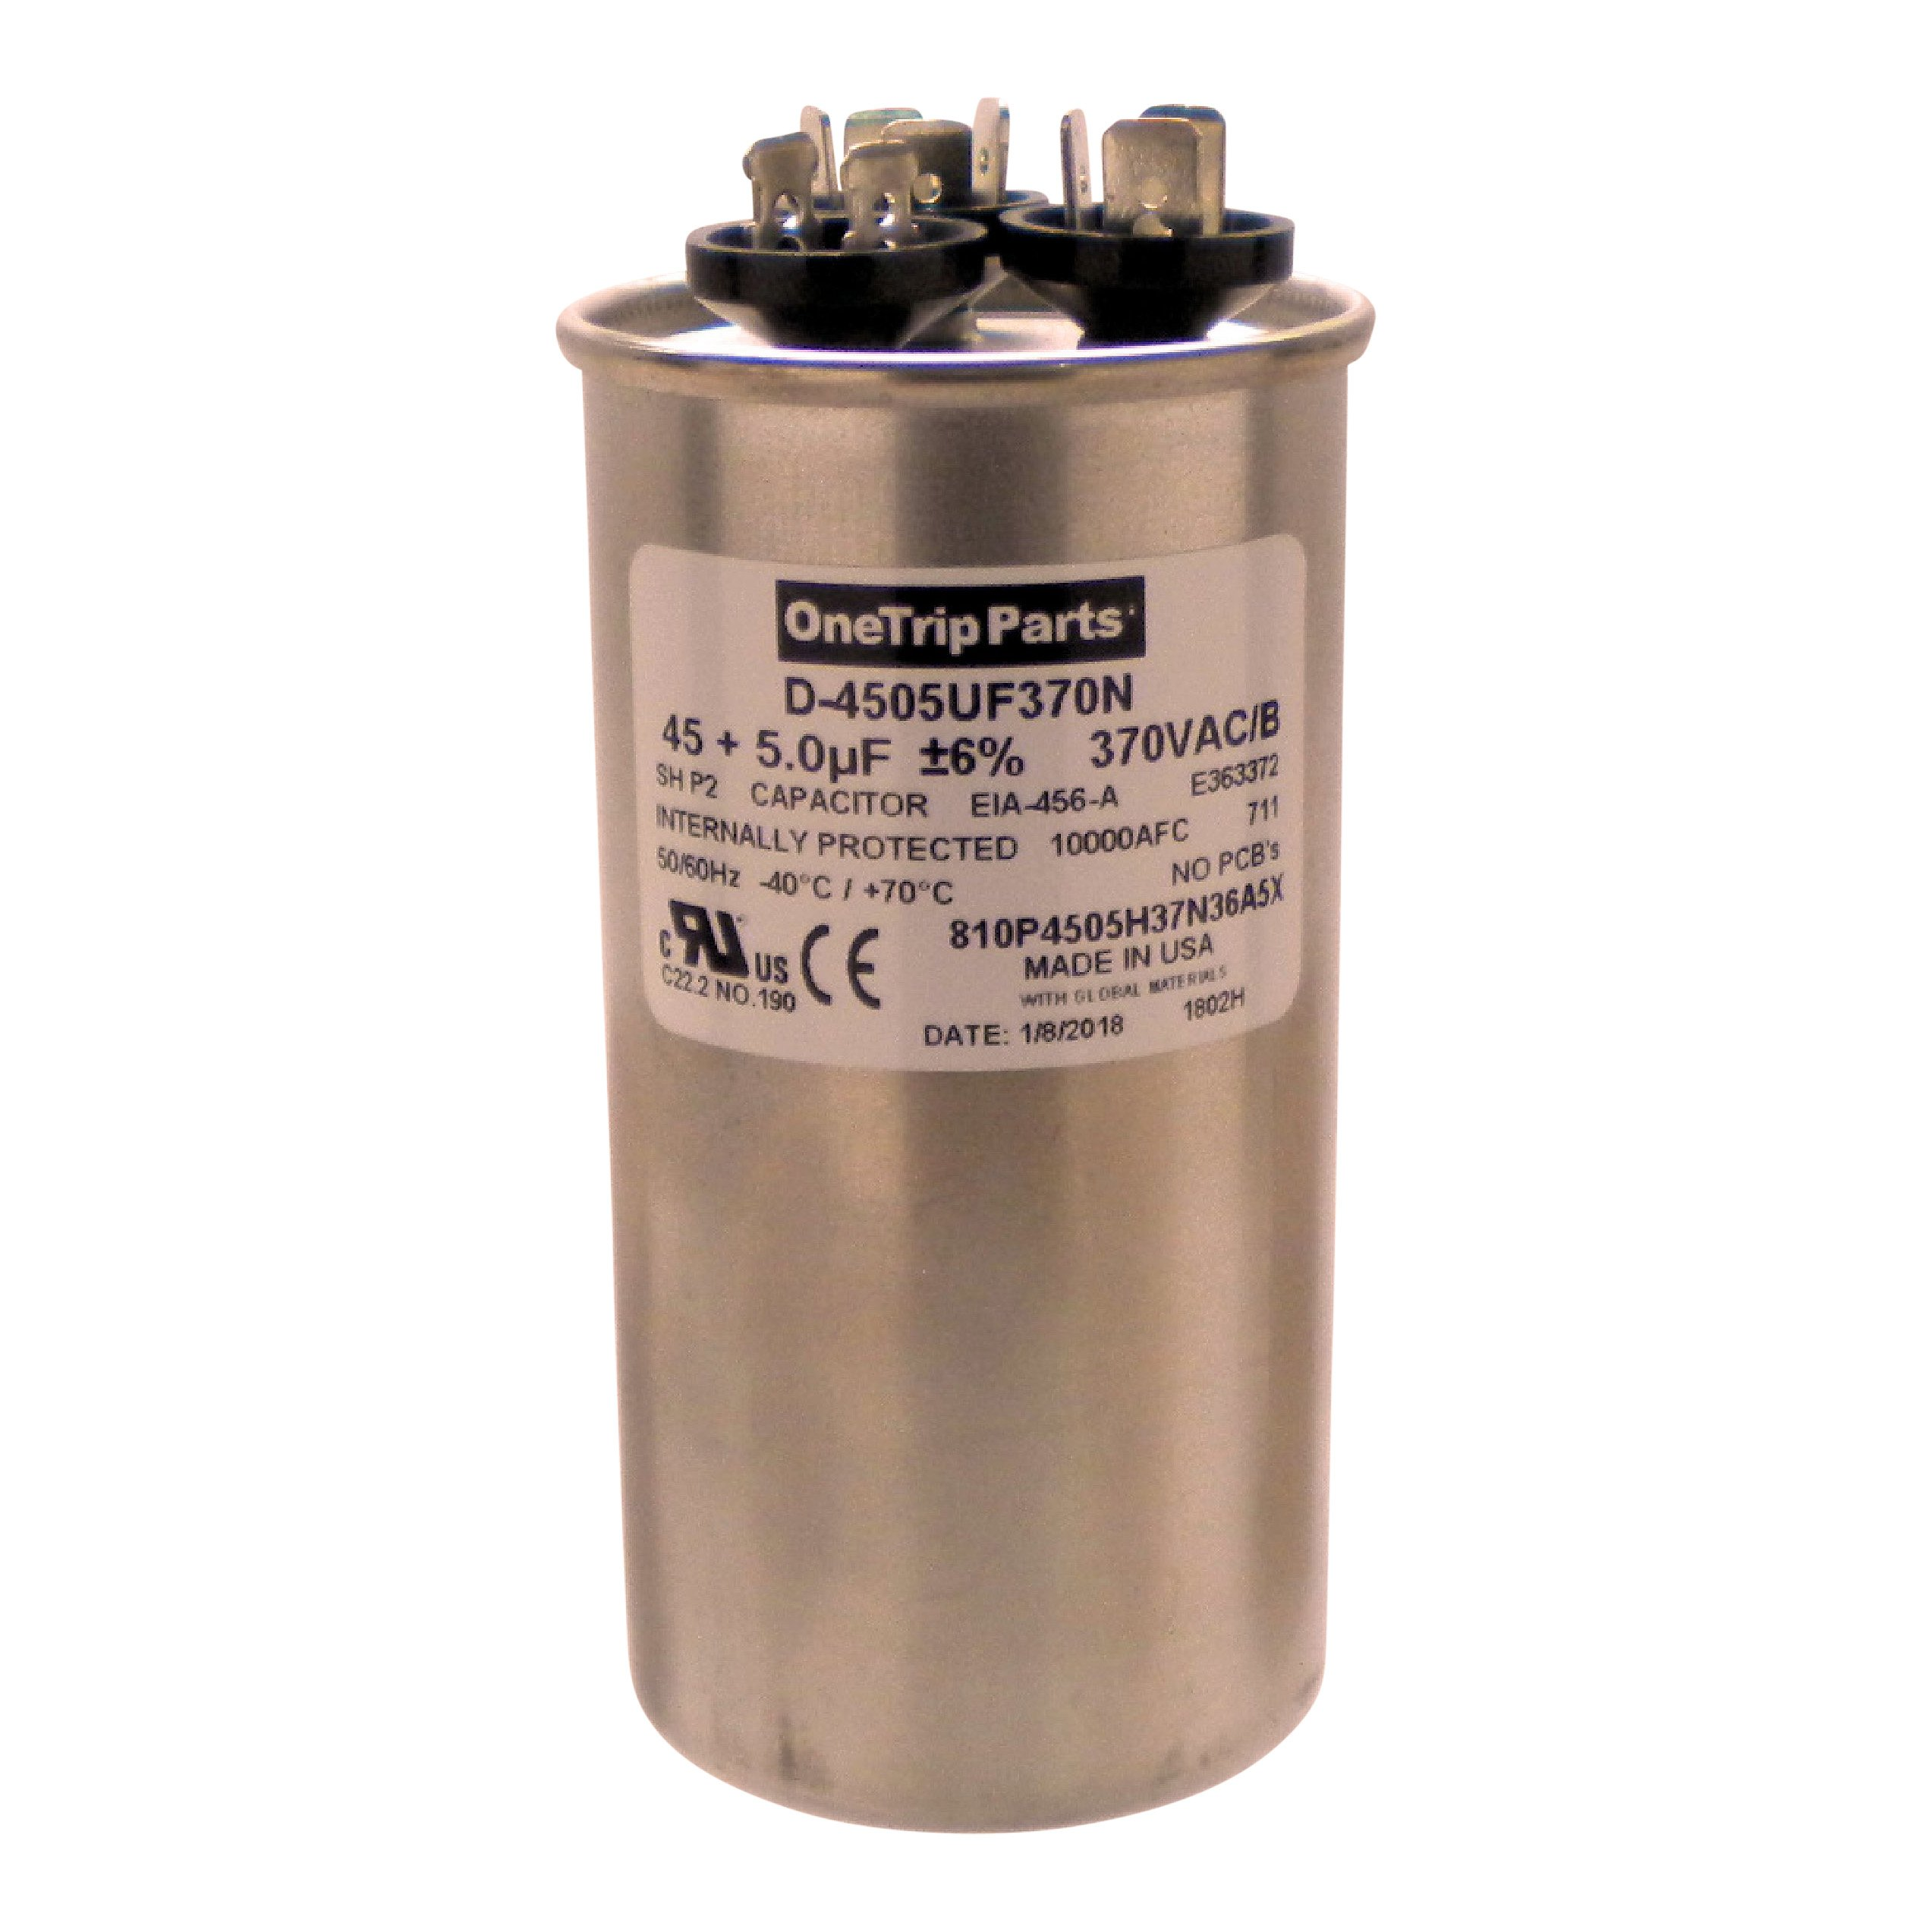 OneTrip Parts USA Run Capacitor 45+5 MFD 370 VAC 2'' Round Replacement For Carrier Bryant Payne Day & Night P291-4553 by OneTrip Parts